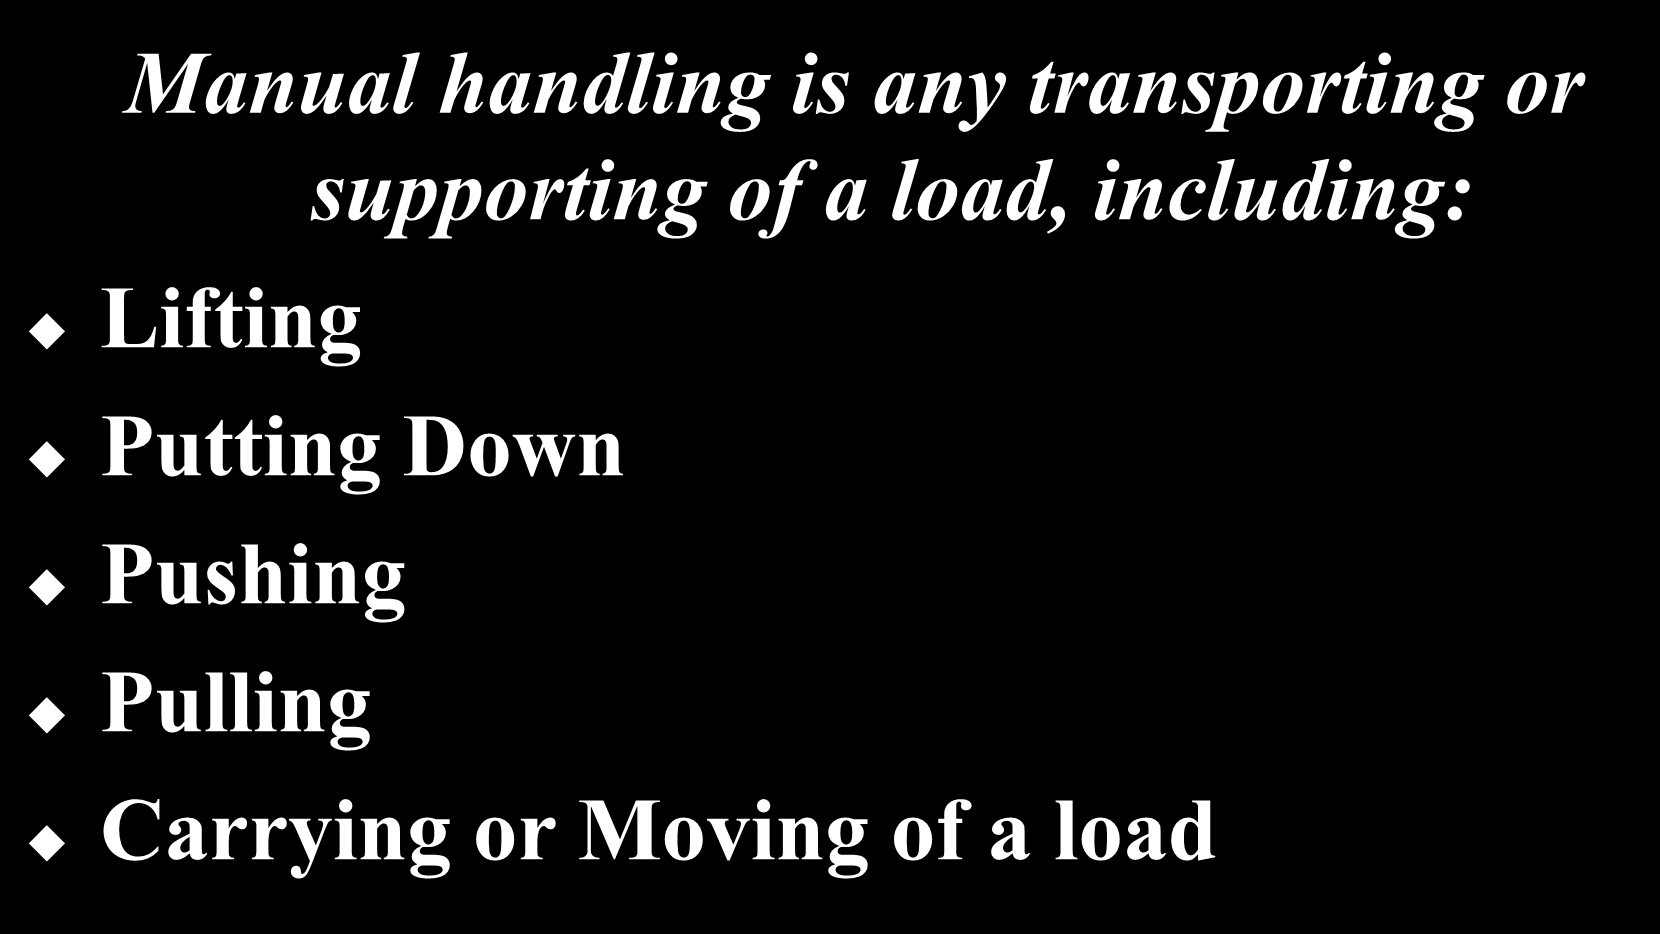 What is meant by MANUAL HANDLING?